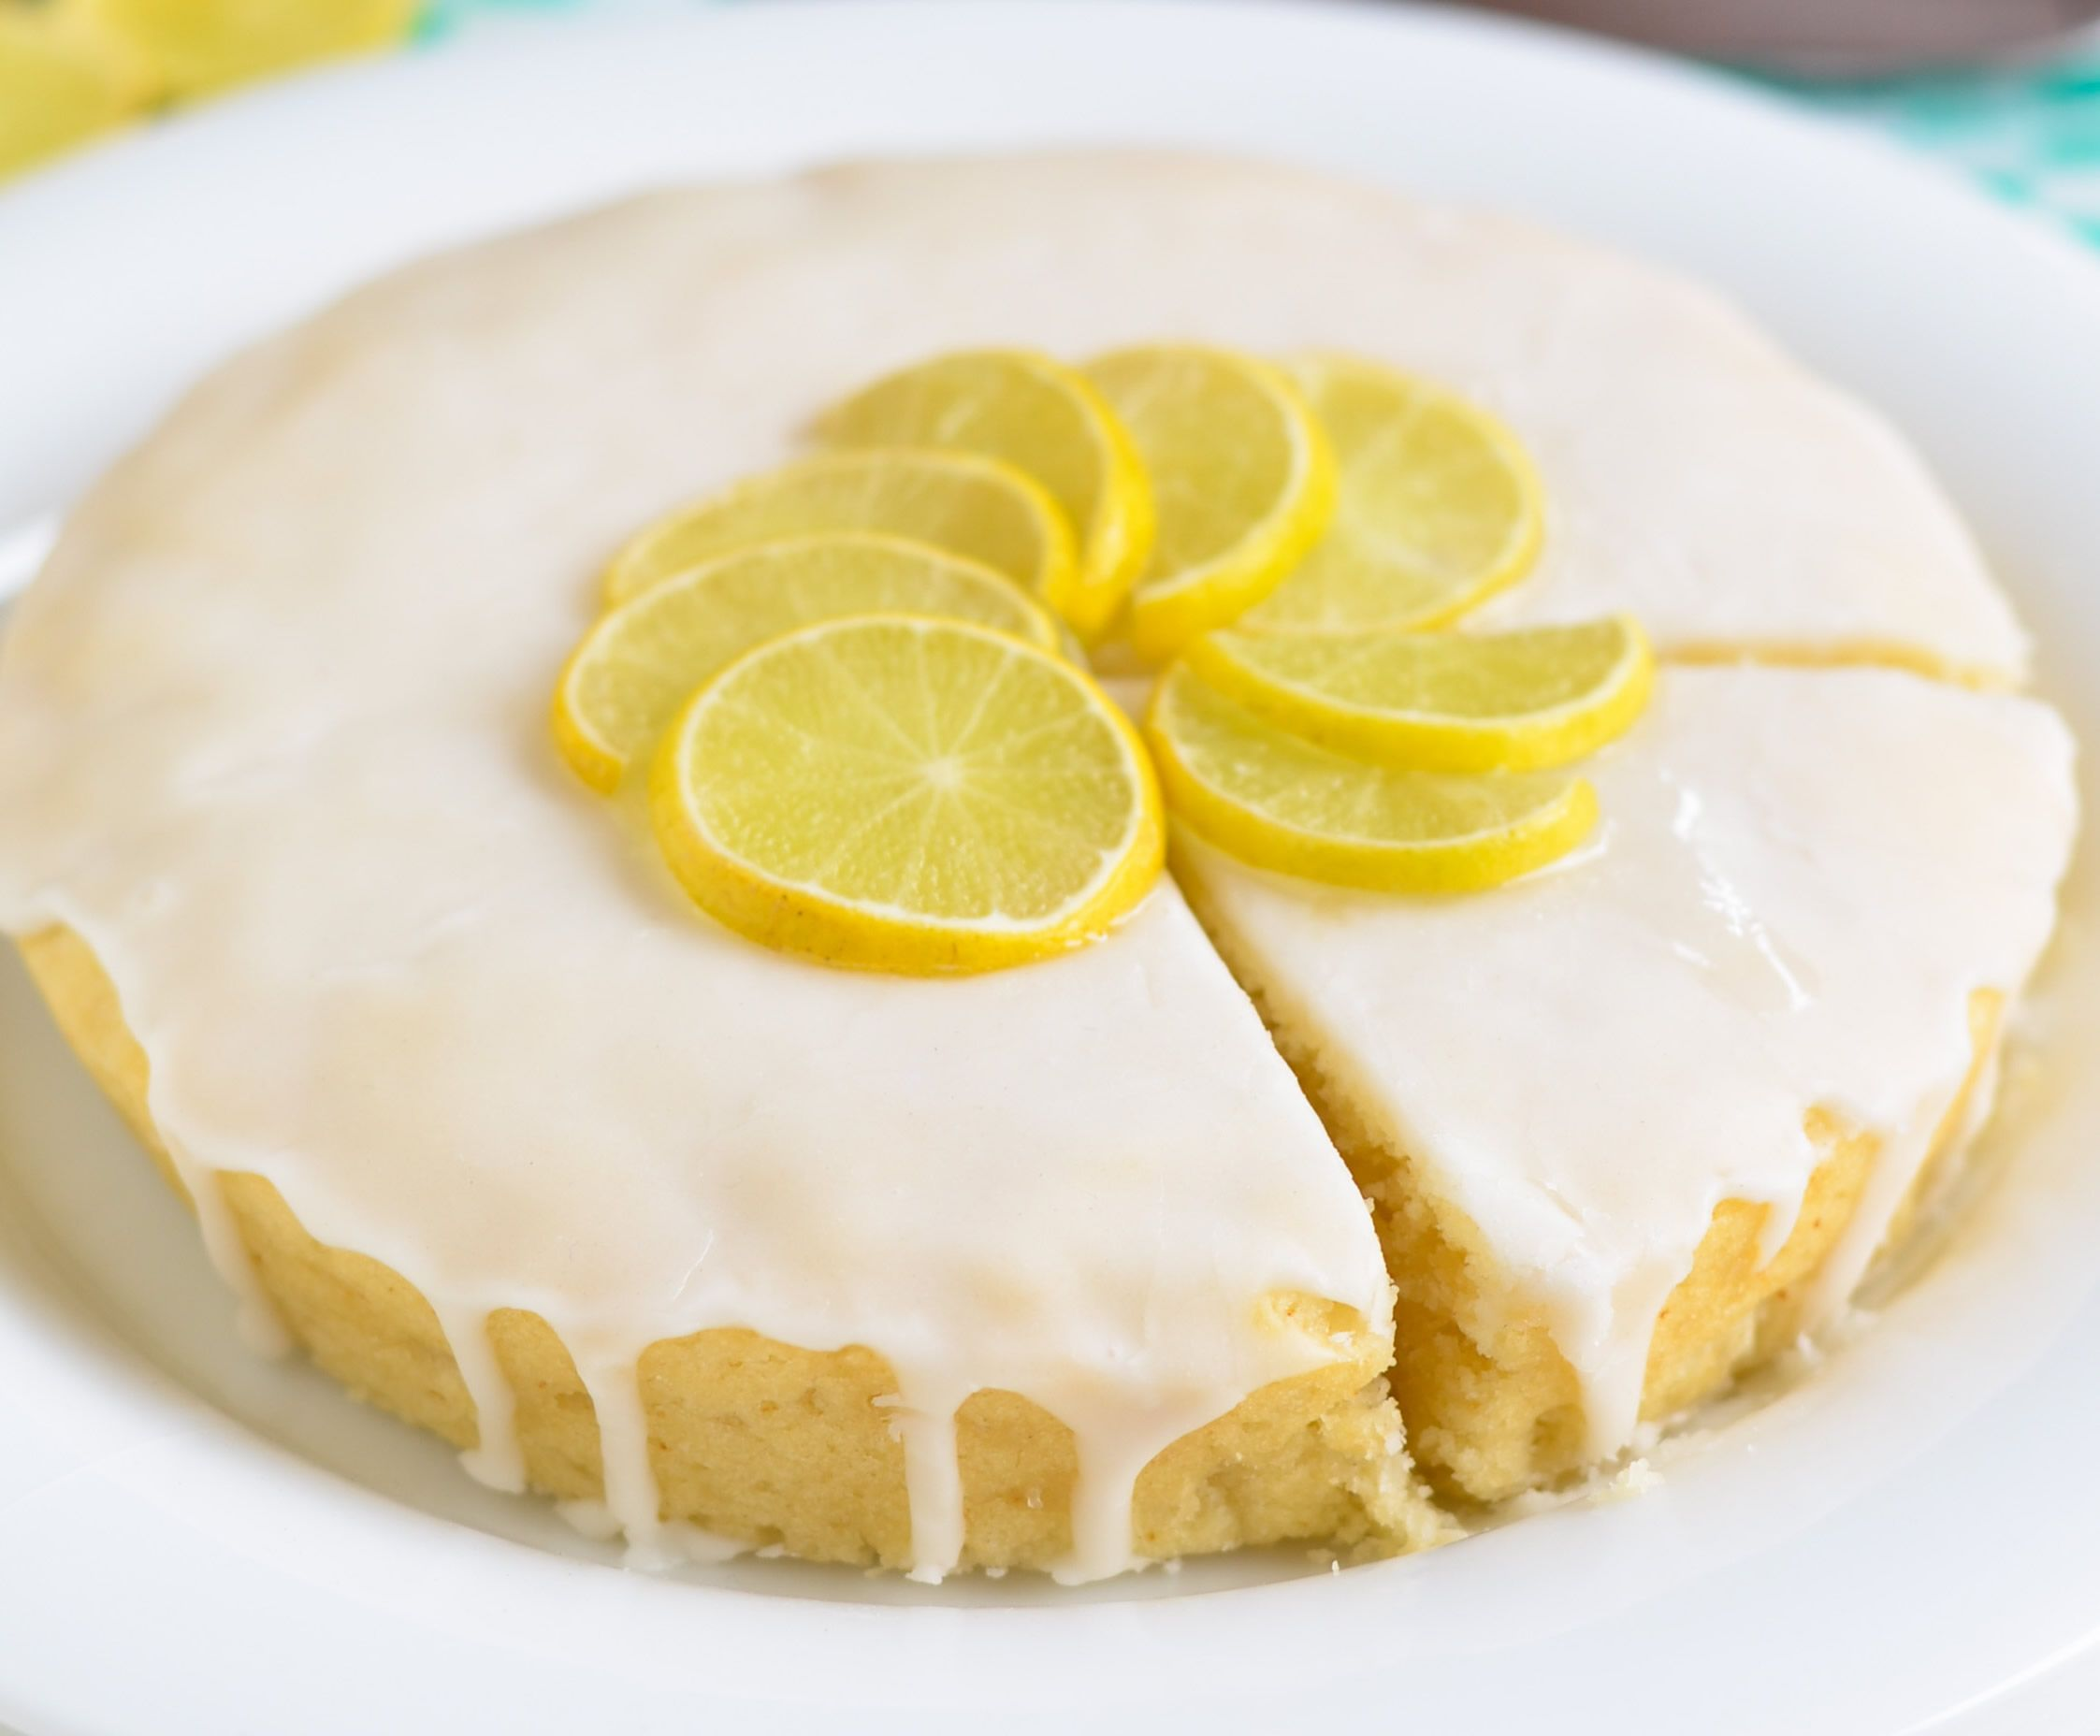 Beautiful and good...Frosted #cake with #lemon